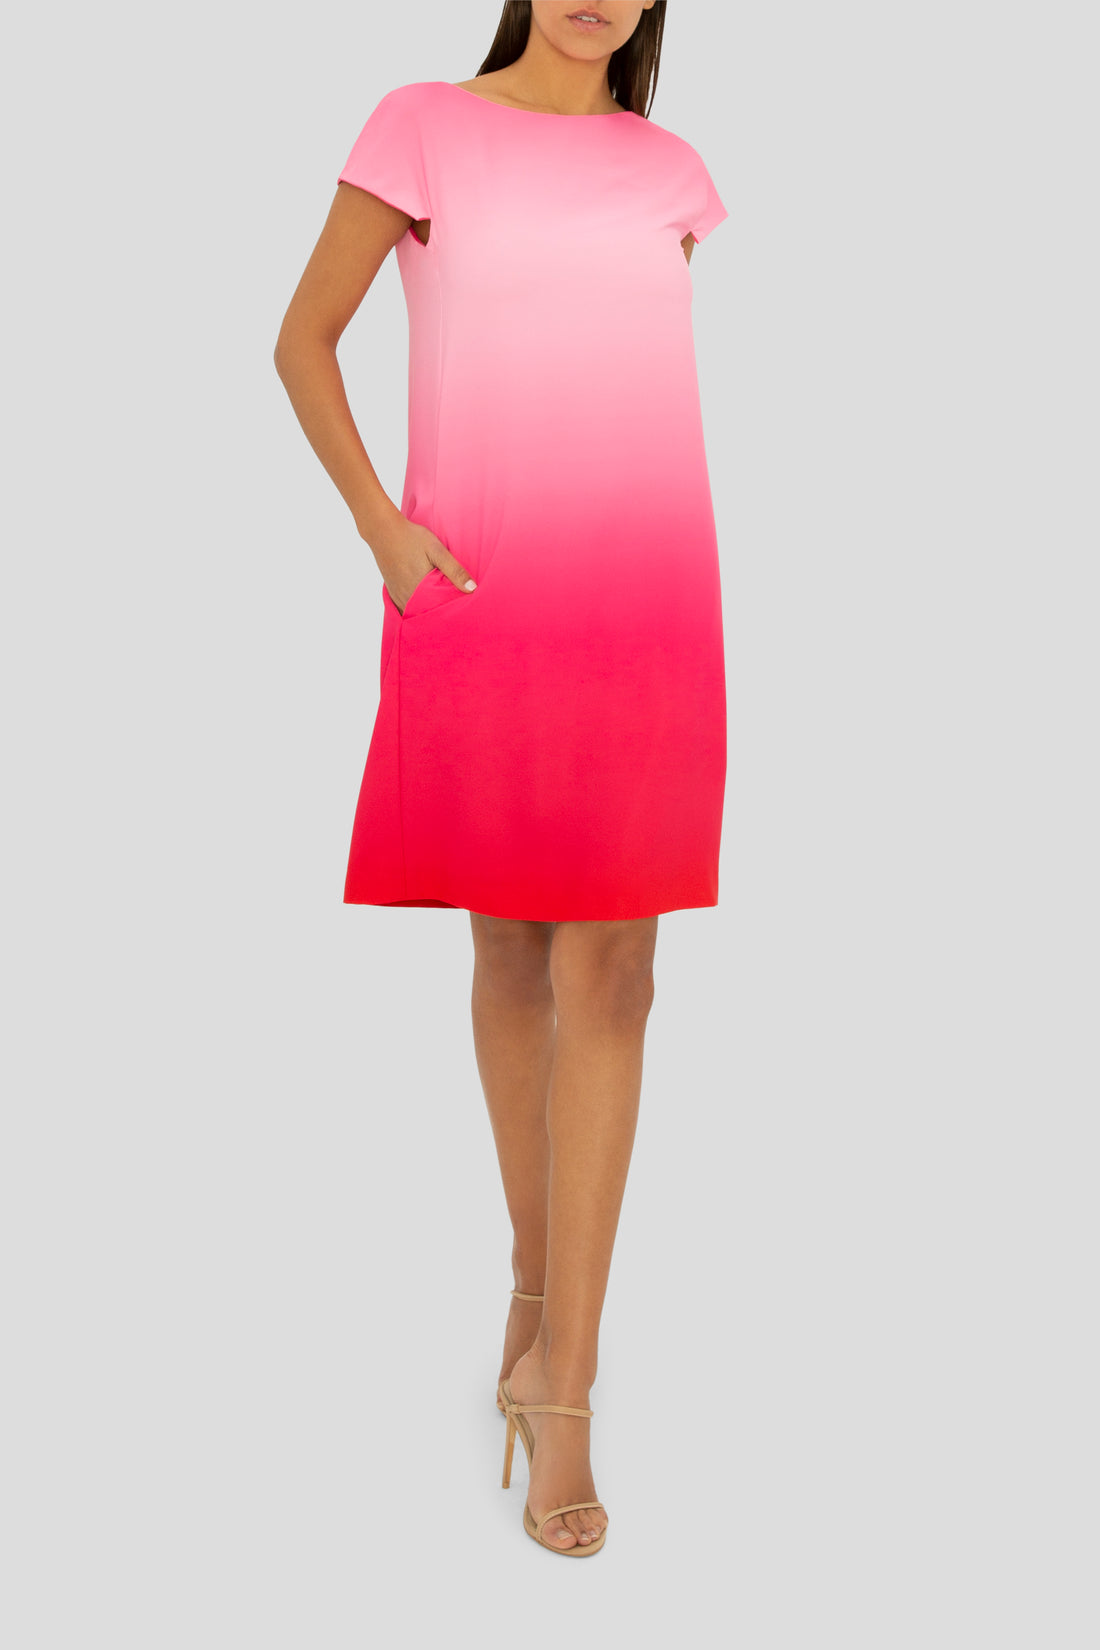 THE PASSION PINK OMBRE DRESS